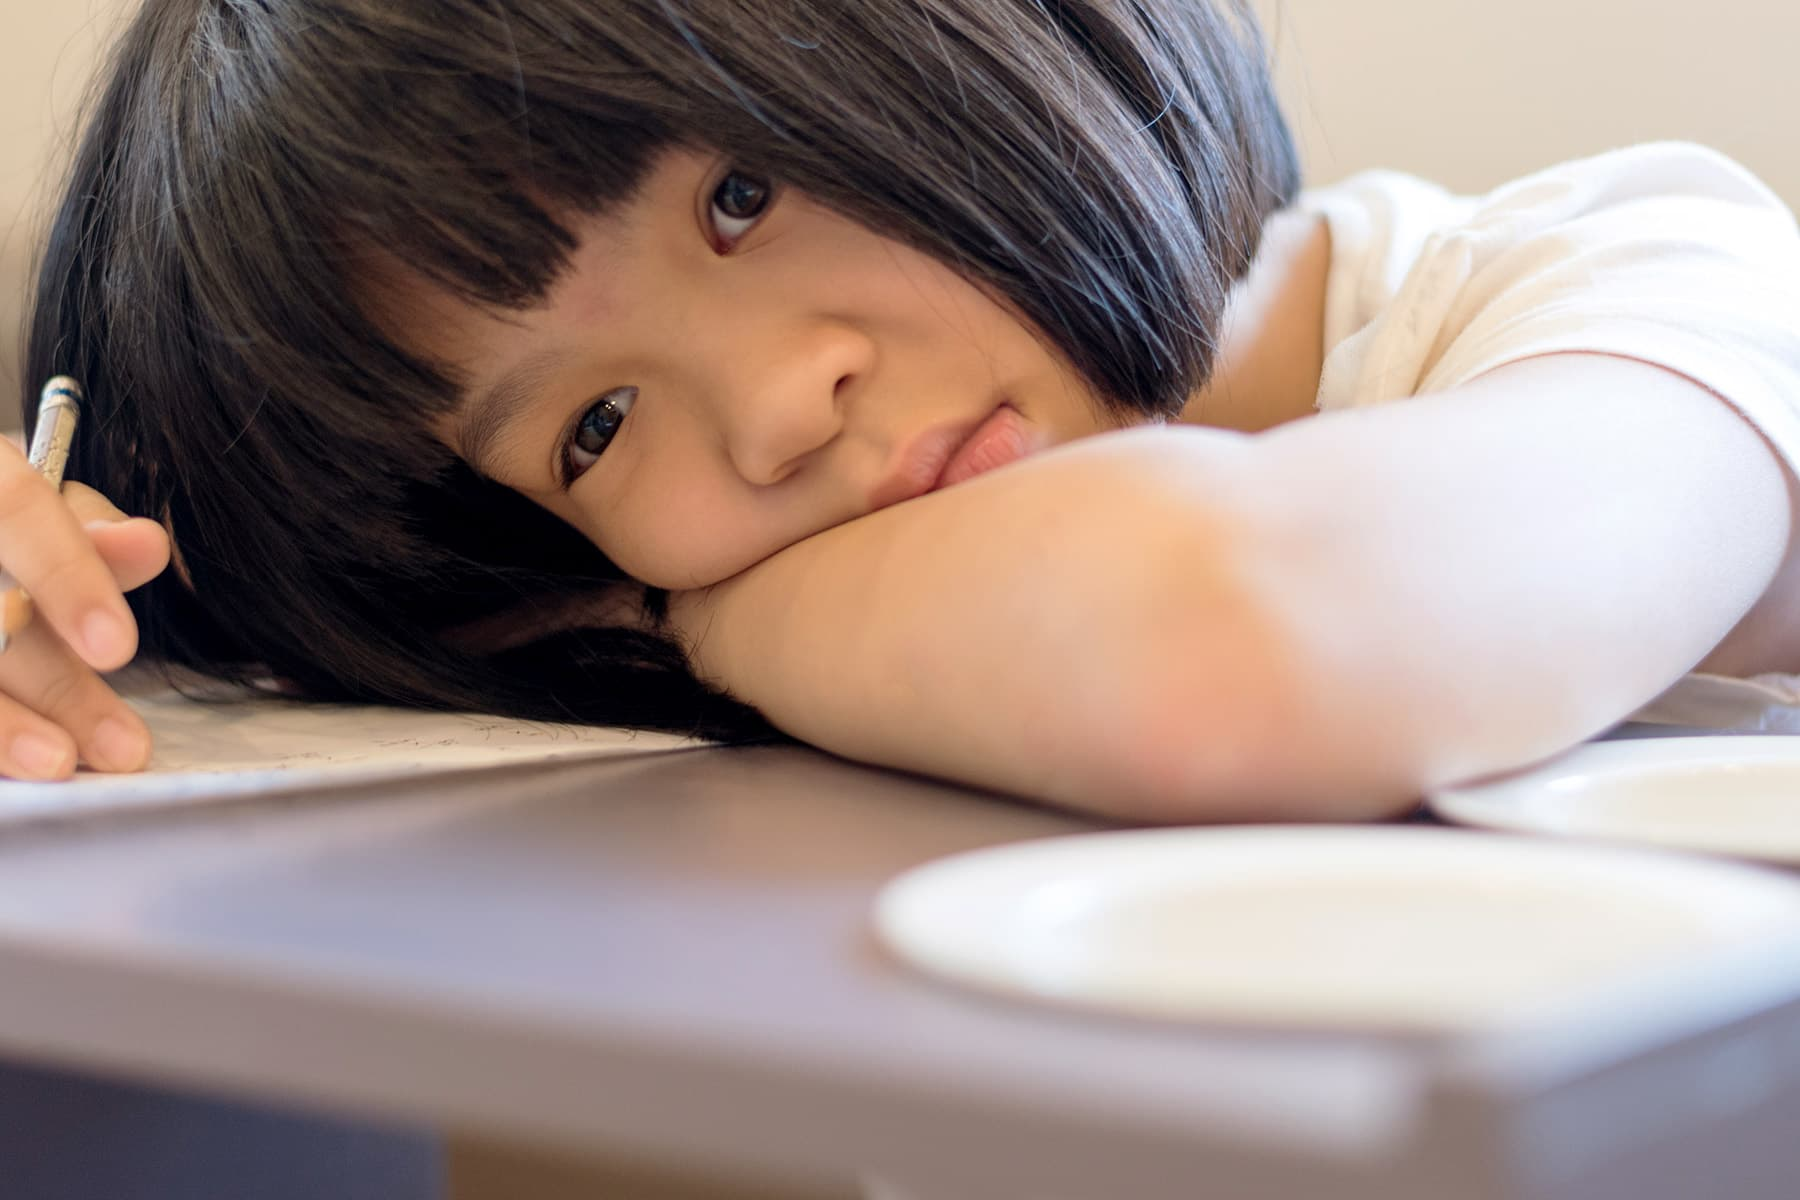 photo of girl with adhd